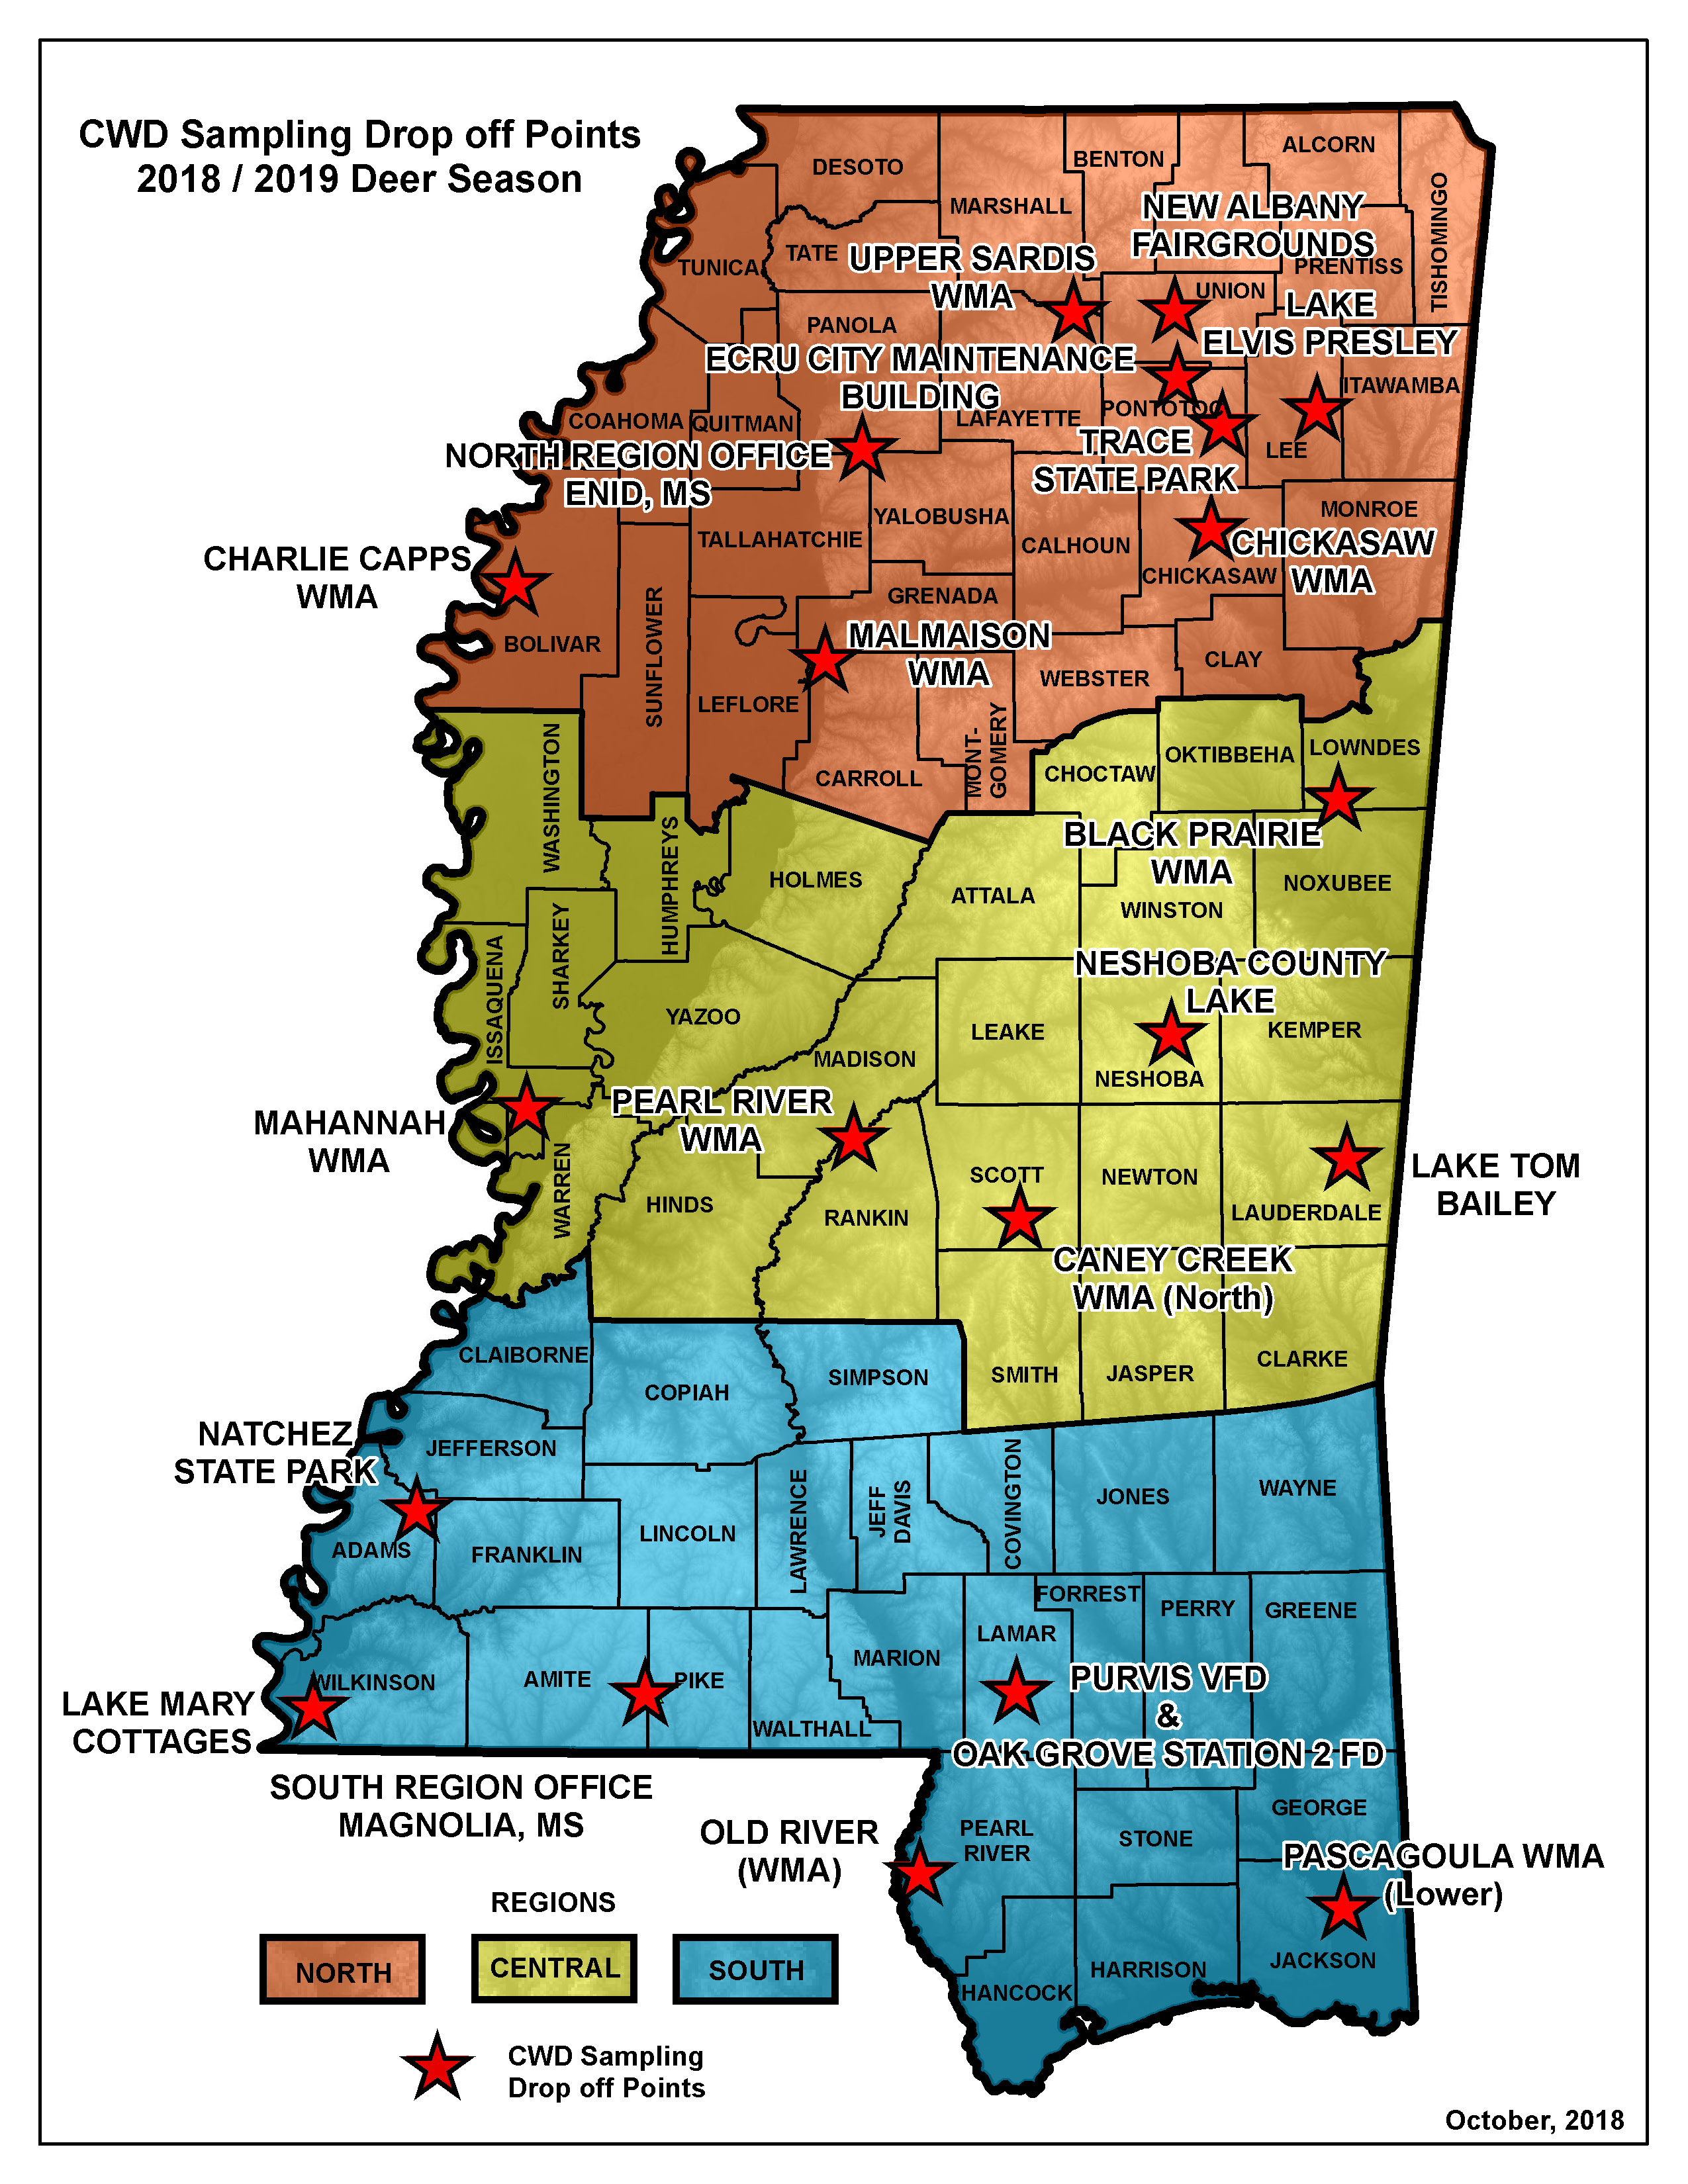 MDWFP - MDWFP Provides CWD Sampling for Hunters Statewide on bay saint louis ms map, ms city map, ms map towns highways, ms la map, nesbit ms map, mississippi map, morton ms map, ms state map, memphis ms map, clarksdale ms map, ms county map, ms st map, rand mcnally missouri state map, town of hempstead ny map, jayess ms map, brookhaven ms map, stoneville ms map, miss map, kentucky county map, long beach ms zoning map,